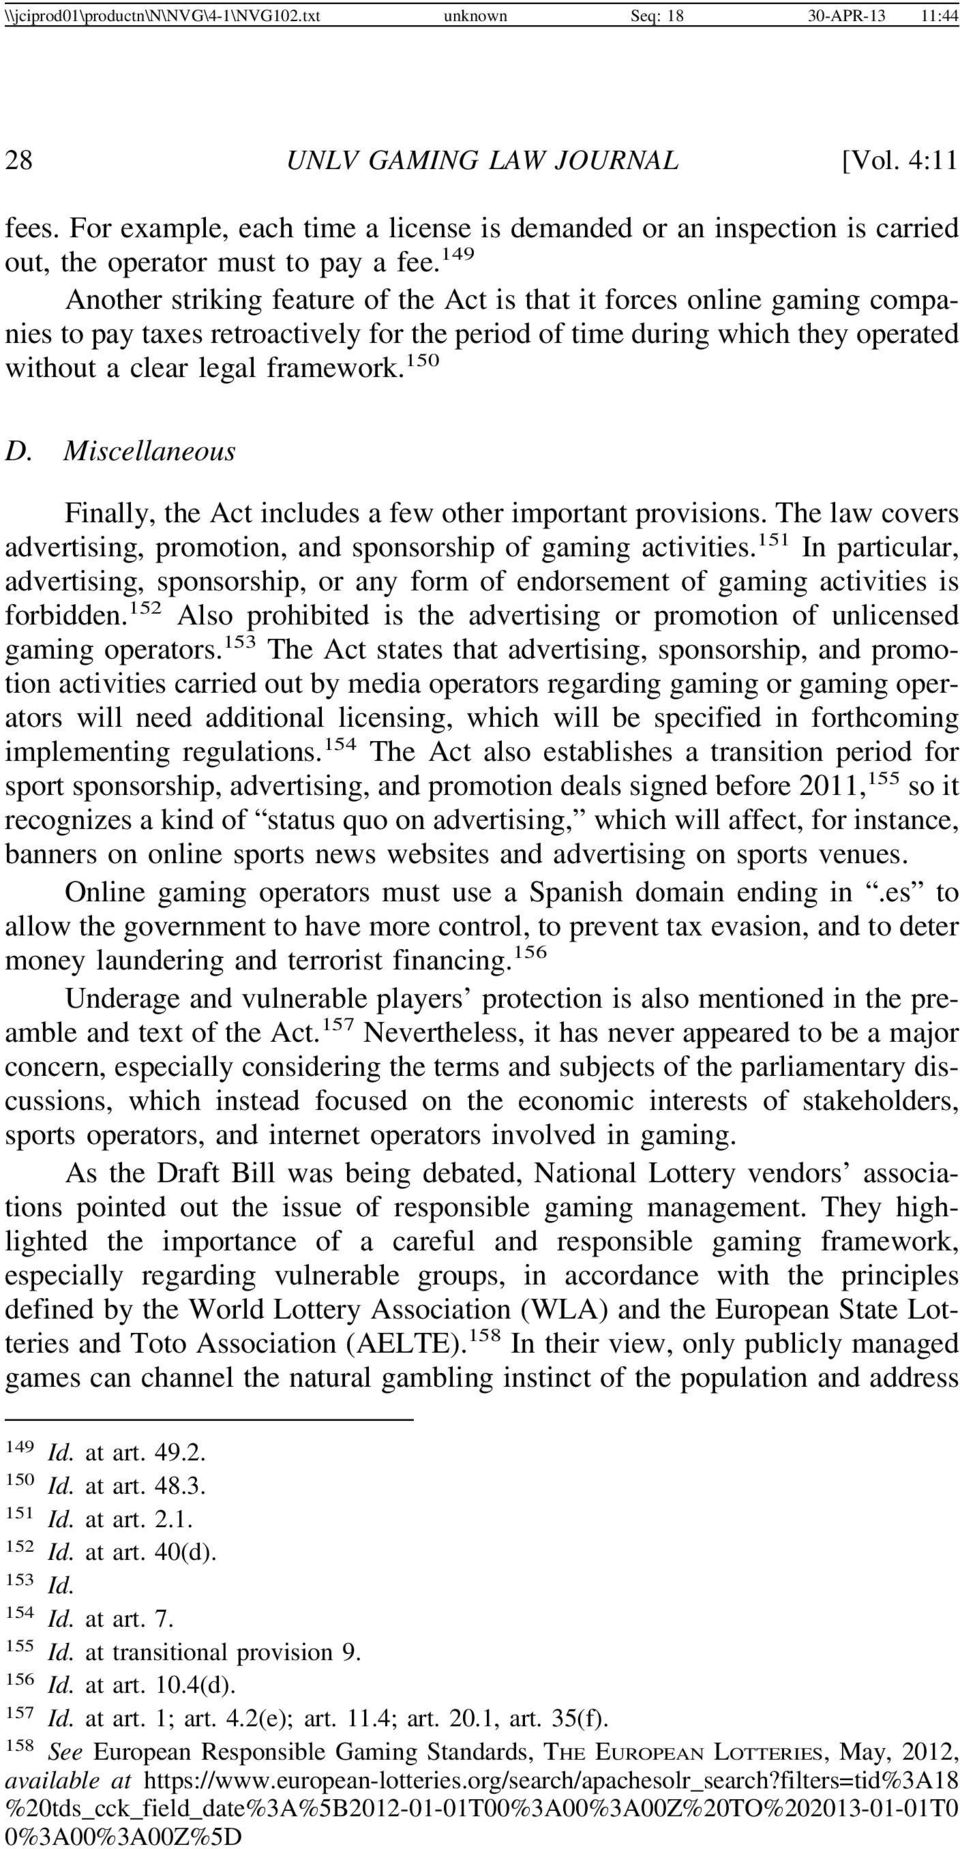 149 Another striking feature of the Act is that it forces online gaming companies to pay taxes retroactively for the period of time during which they operated without a clear legal framework. 150 D.